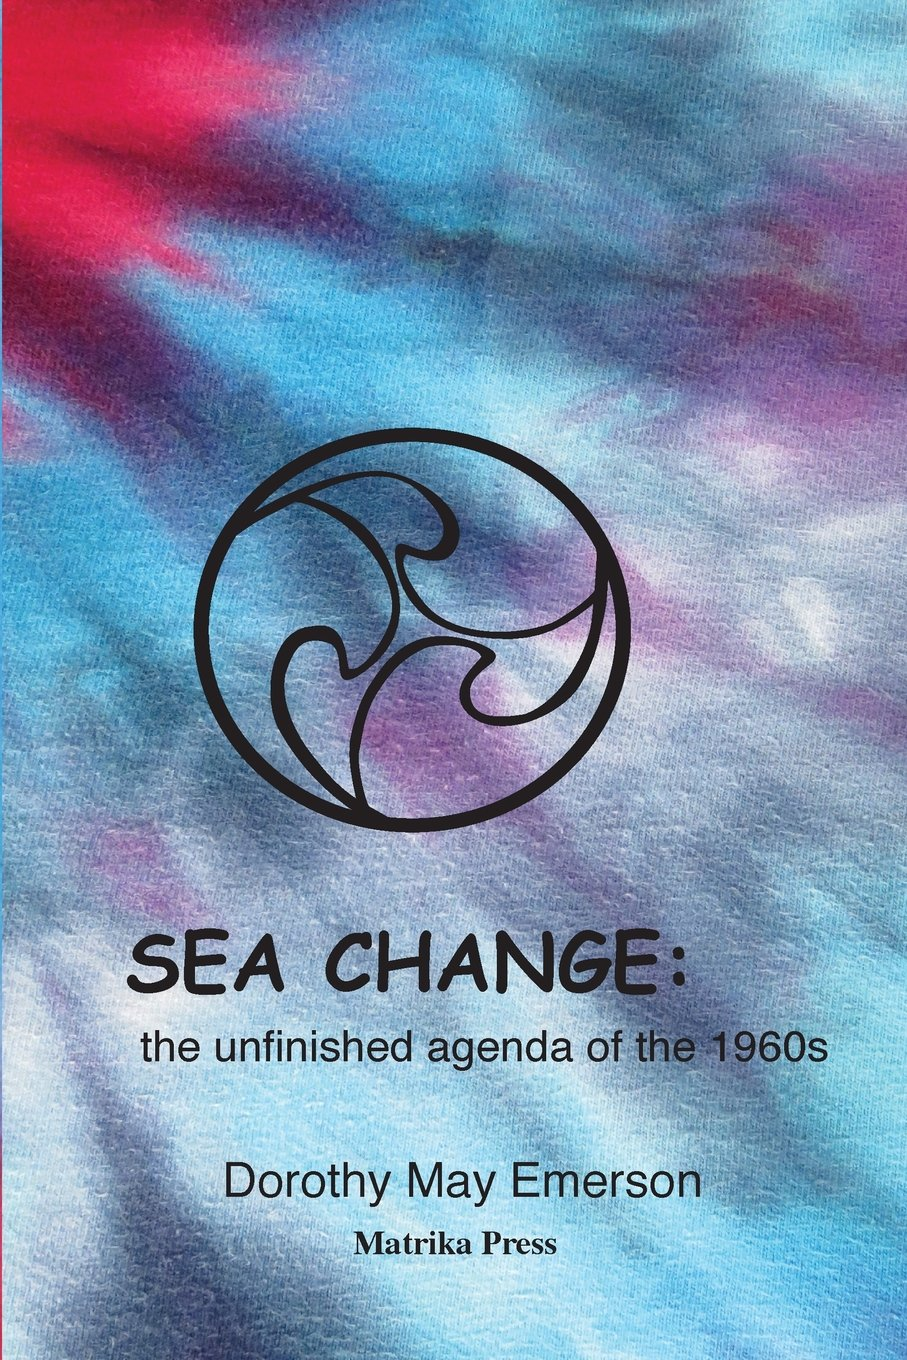 Sea Change: the unfinished agenda of the 1960s pdf